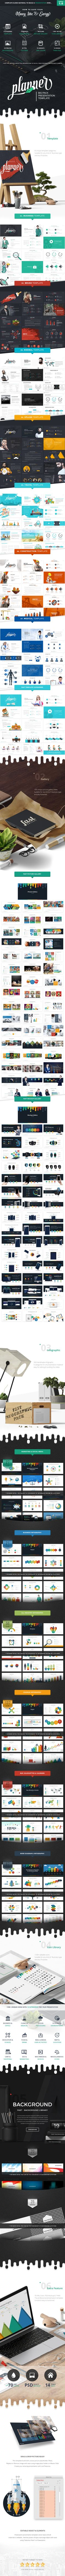 Big Pack Powerpoint Template Planner